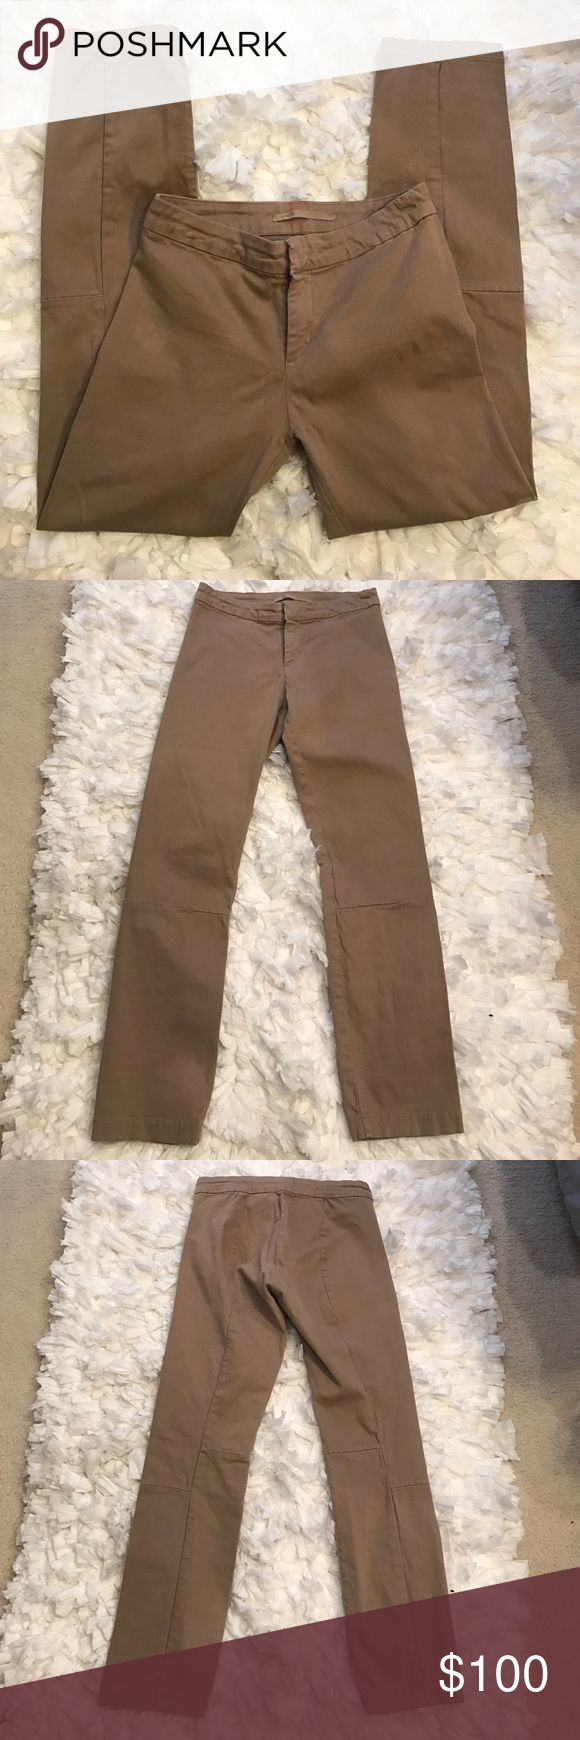 Vince Cropped Khaki Legging Excellent condition. Size 26. Vince. Khaki color. Cropped legging. Vince Pants Ankle & Cropped